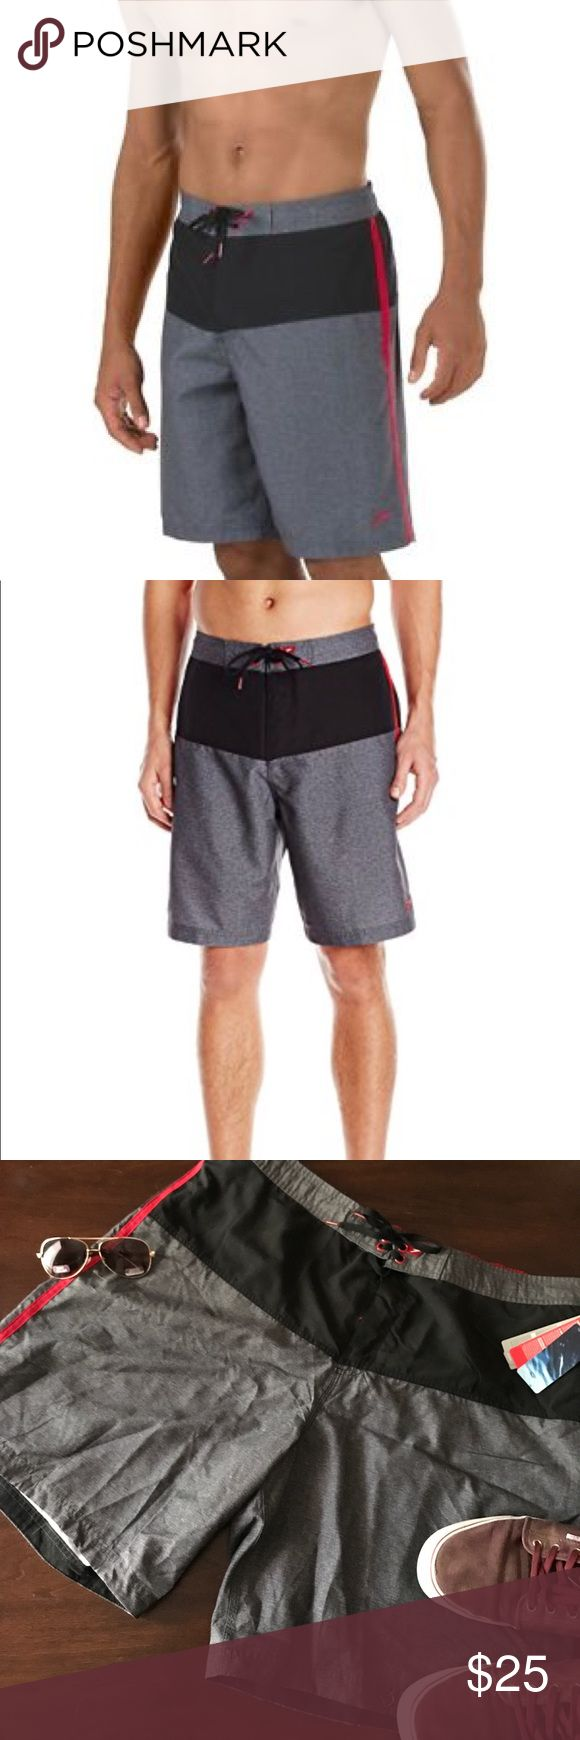 Taking offers! 🎉HP🎉Men's swim trunks The men's swim trunks feature an adjustable waistband for ultimate movability and comfort, whether you're swimming laps or hitting the waves. The shorts are 21 inches from the top of the waistband to the bottom of the short on the outside edge. No holds. No trades. Speedo Swim